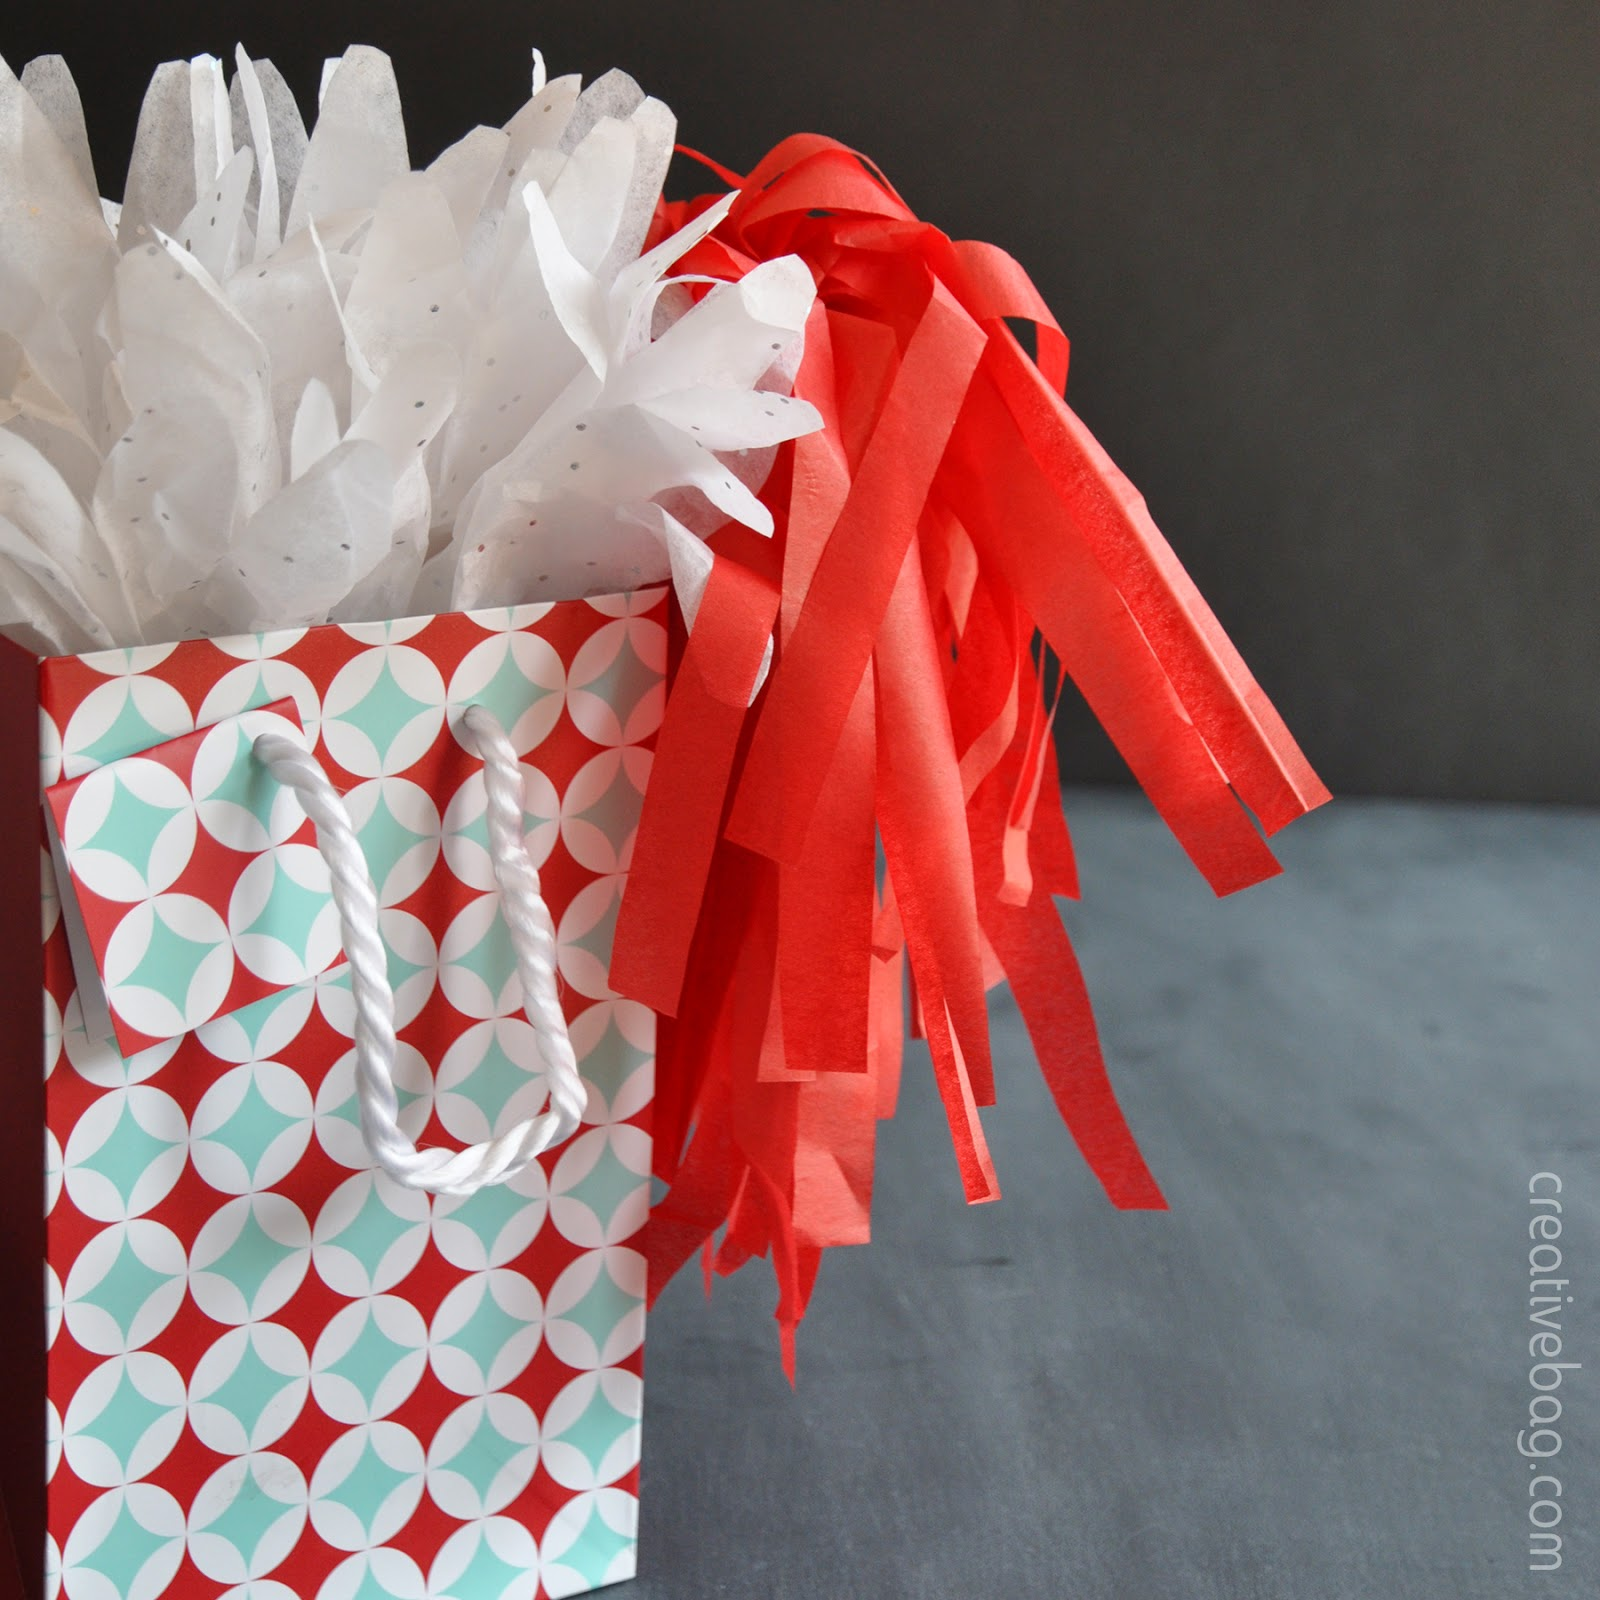 diy tissue paper gift toppers by Lorrie Everitt from Creative Bag